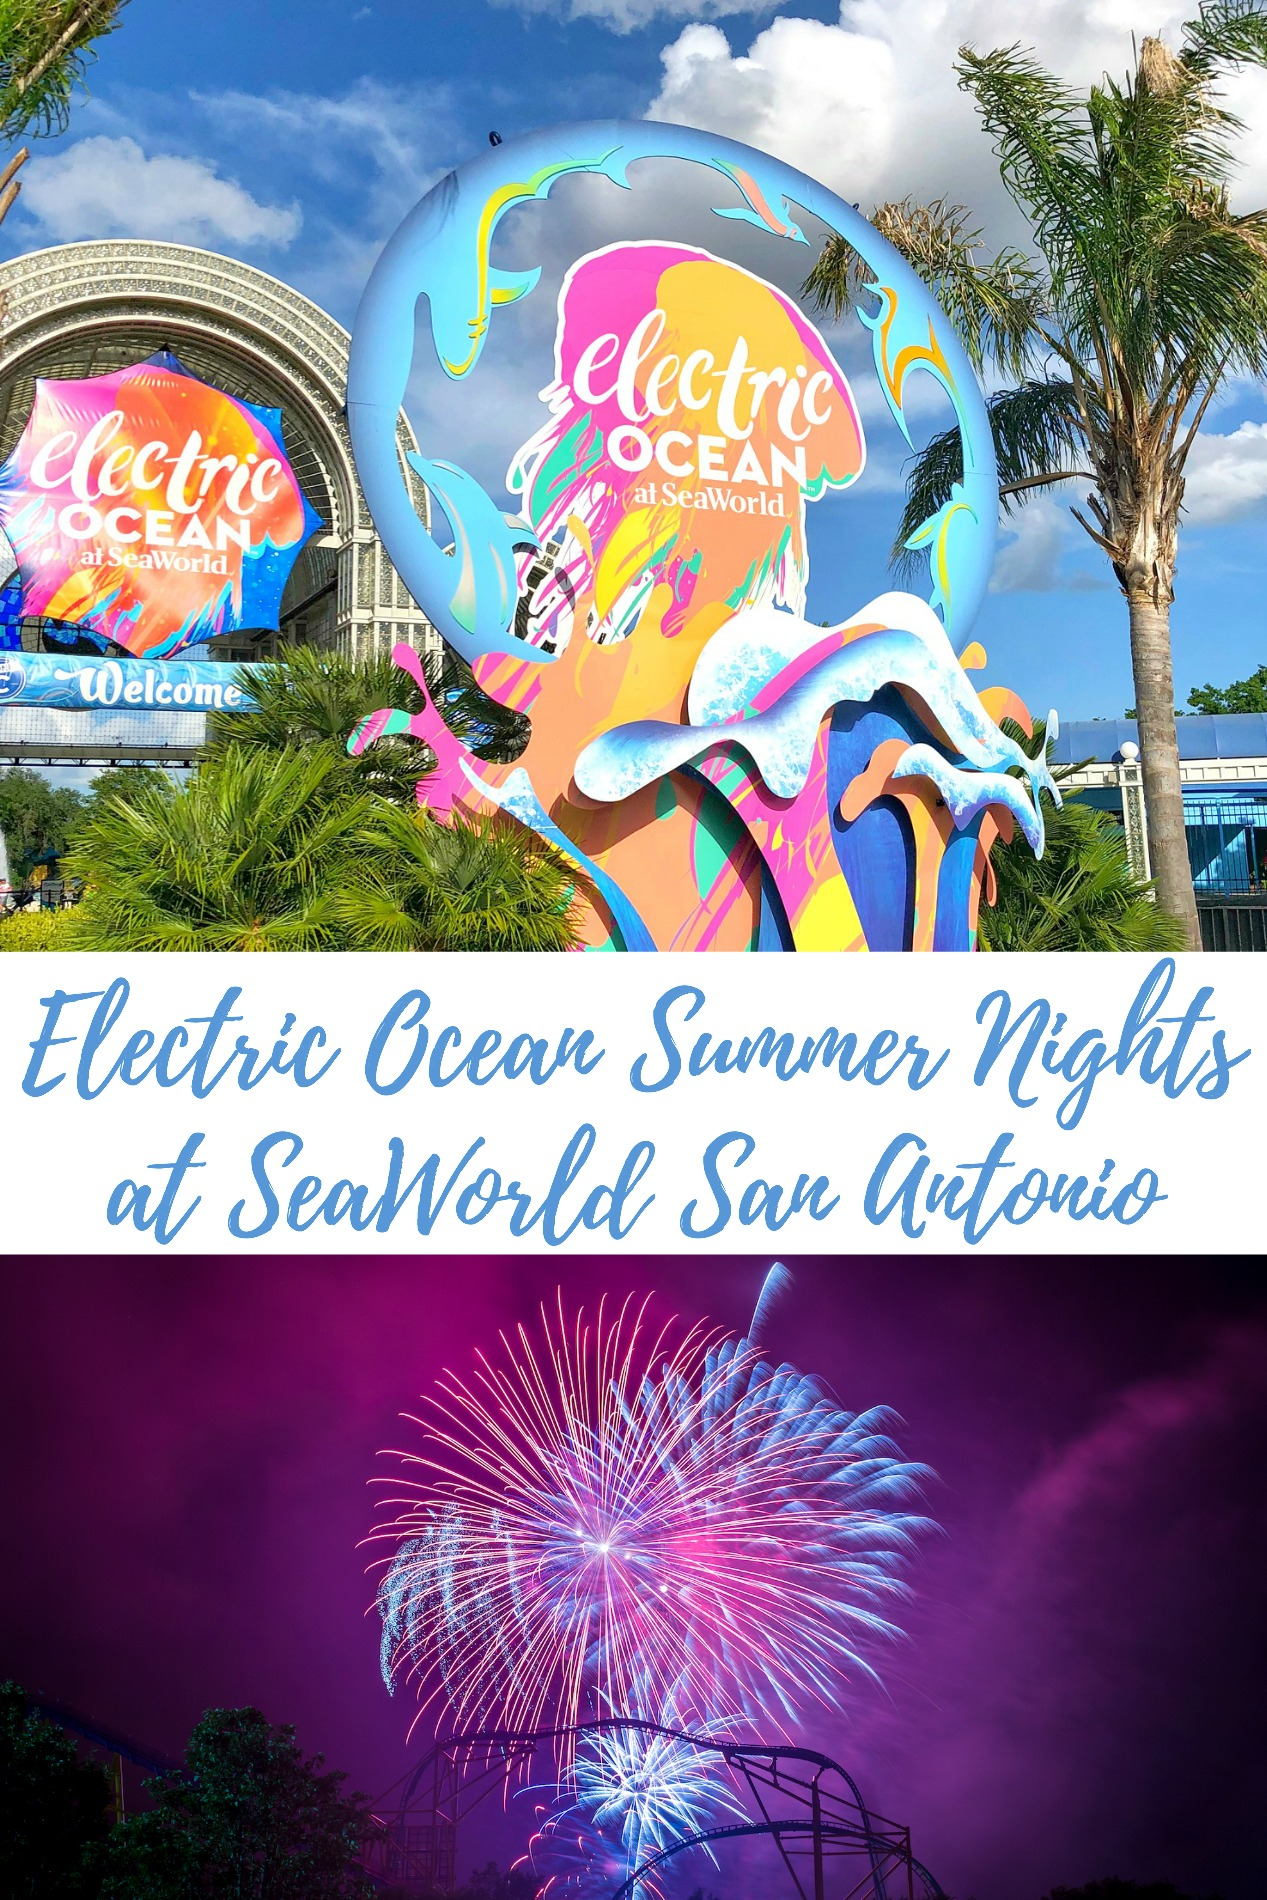 Electric Ocean Summer Nights at SeaWorld